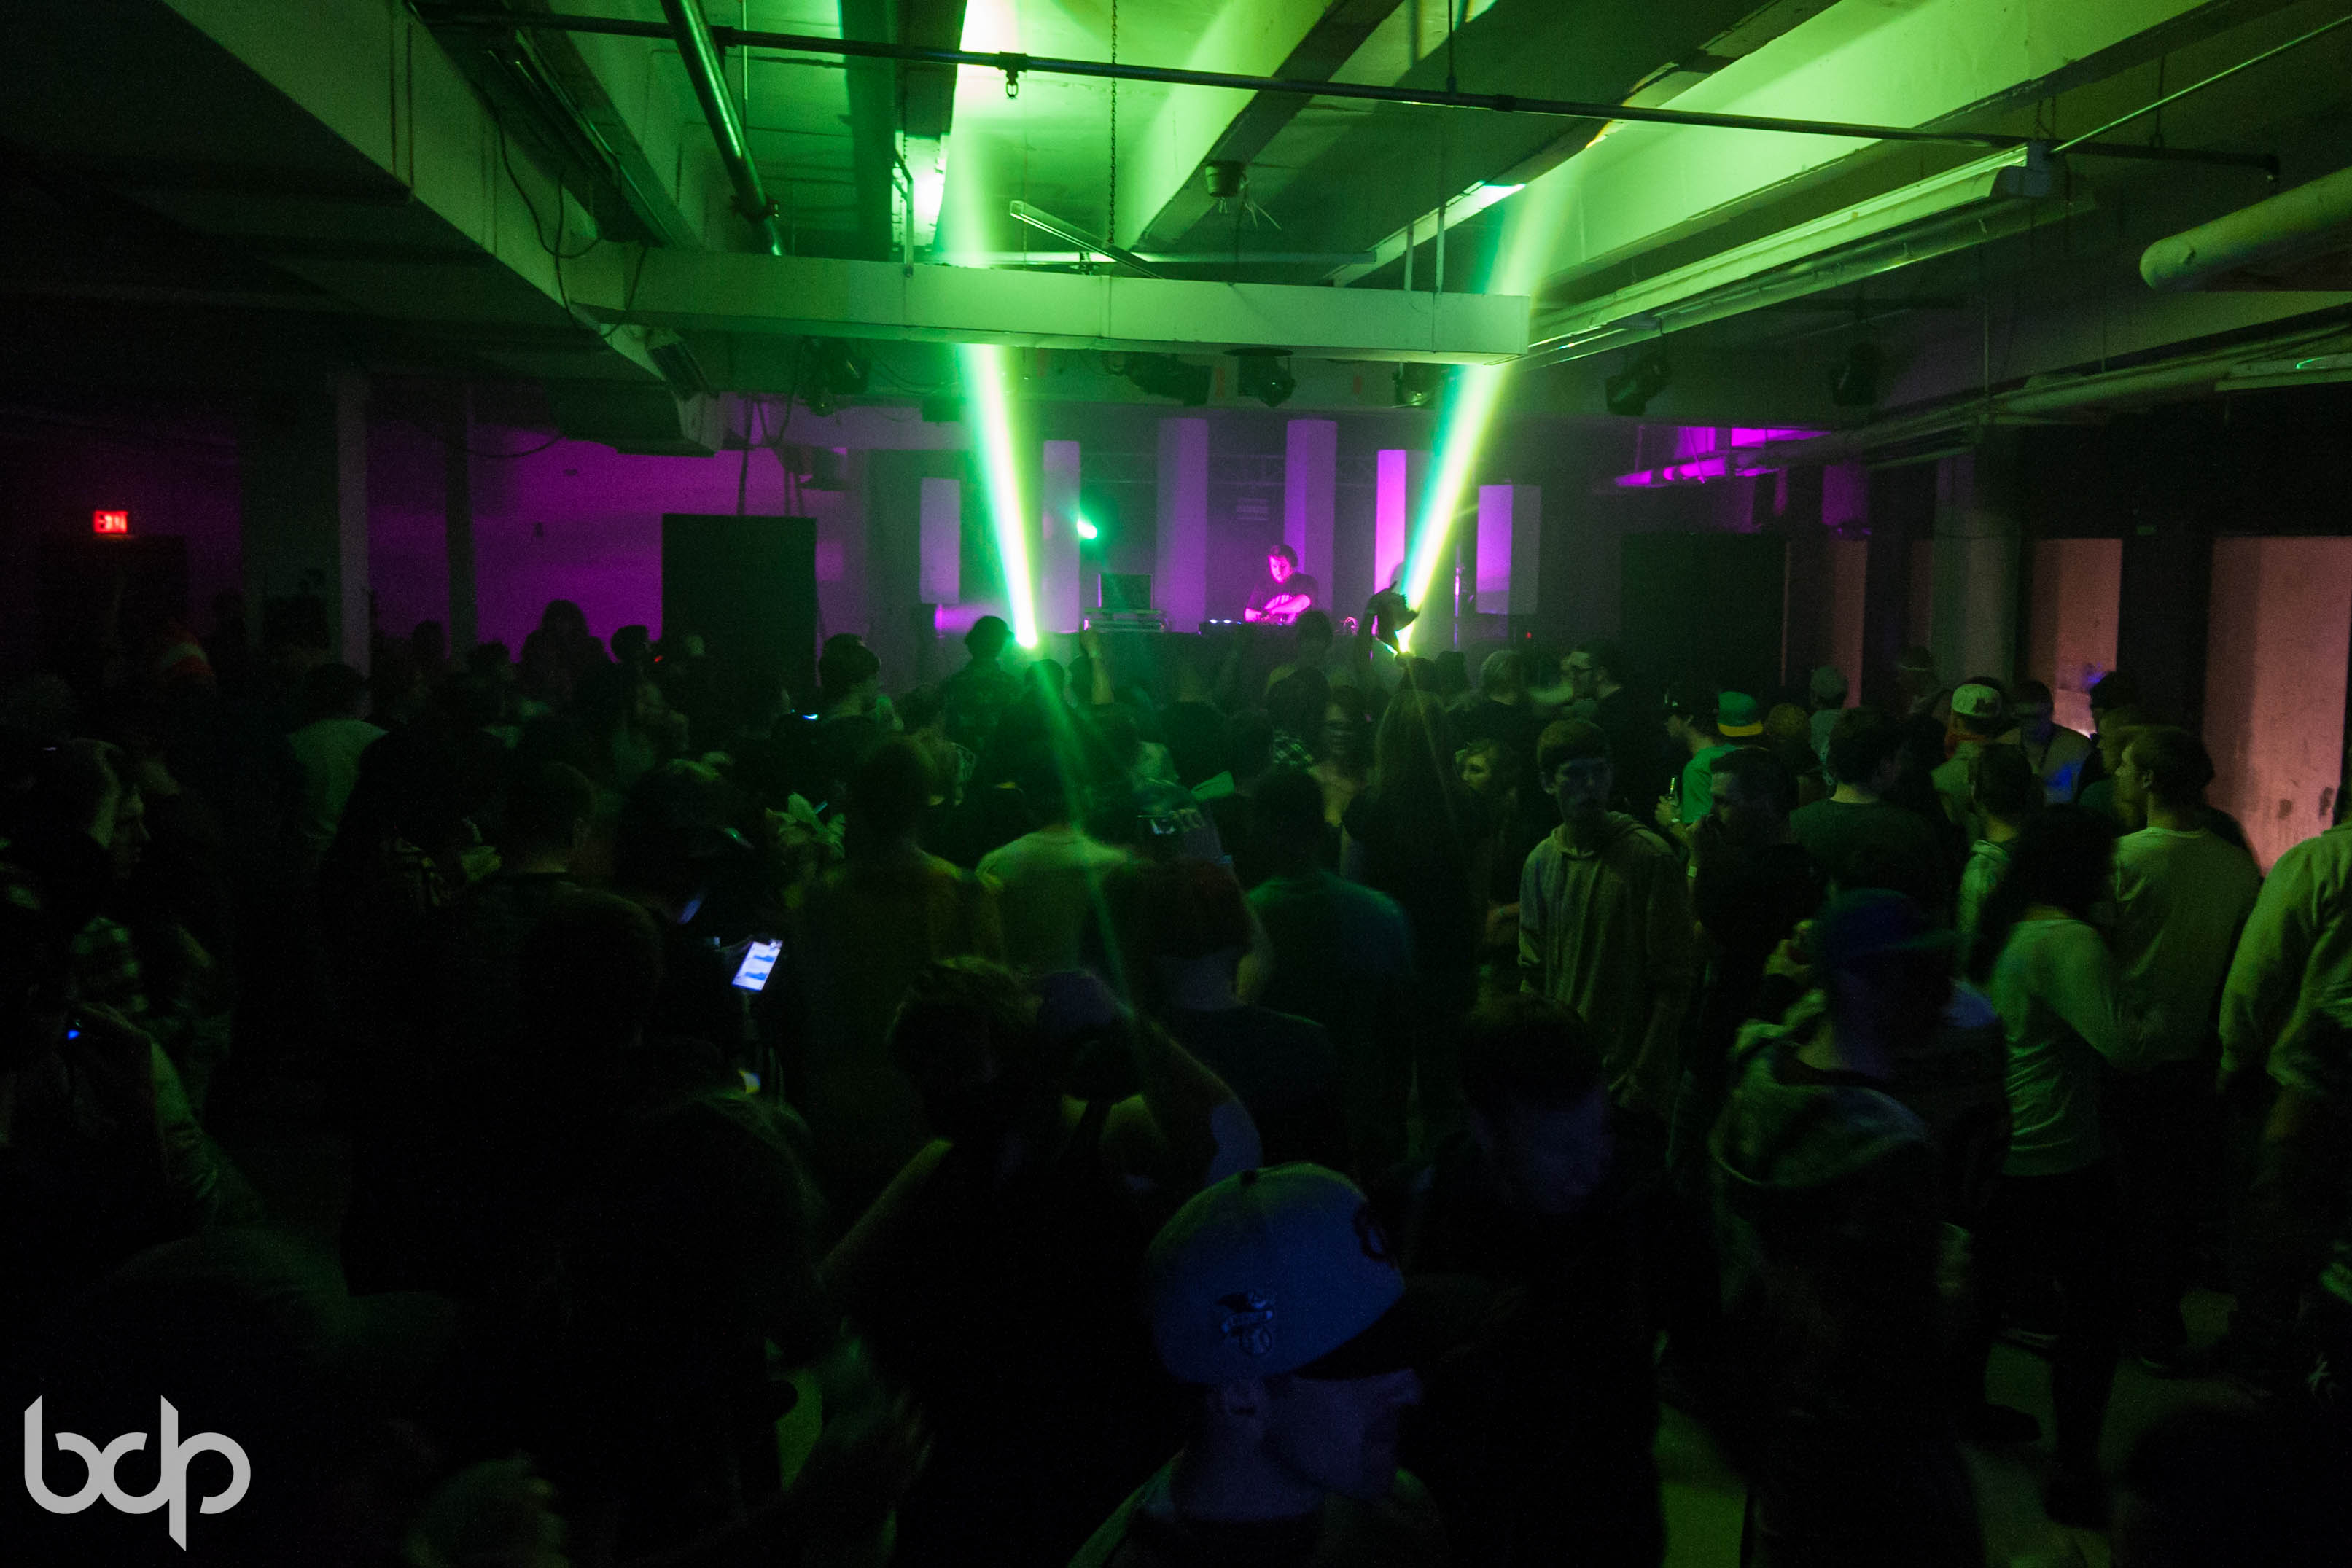 Bass Riot ft. DjAhsta, Cyberoptics, Jphelps at The Loft 122113 BDP-30.jpg